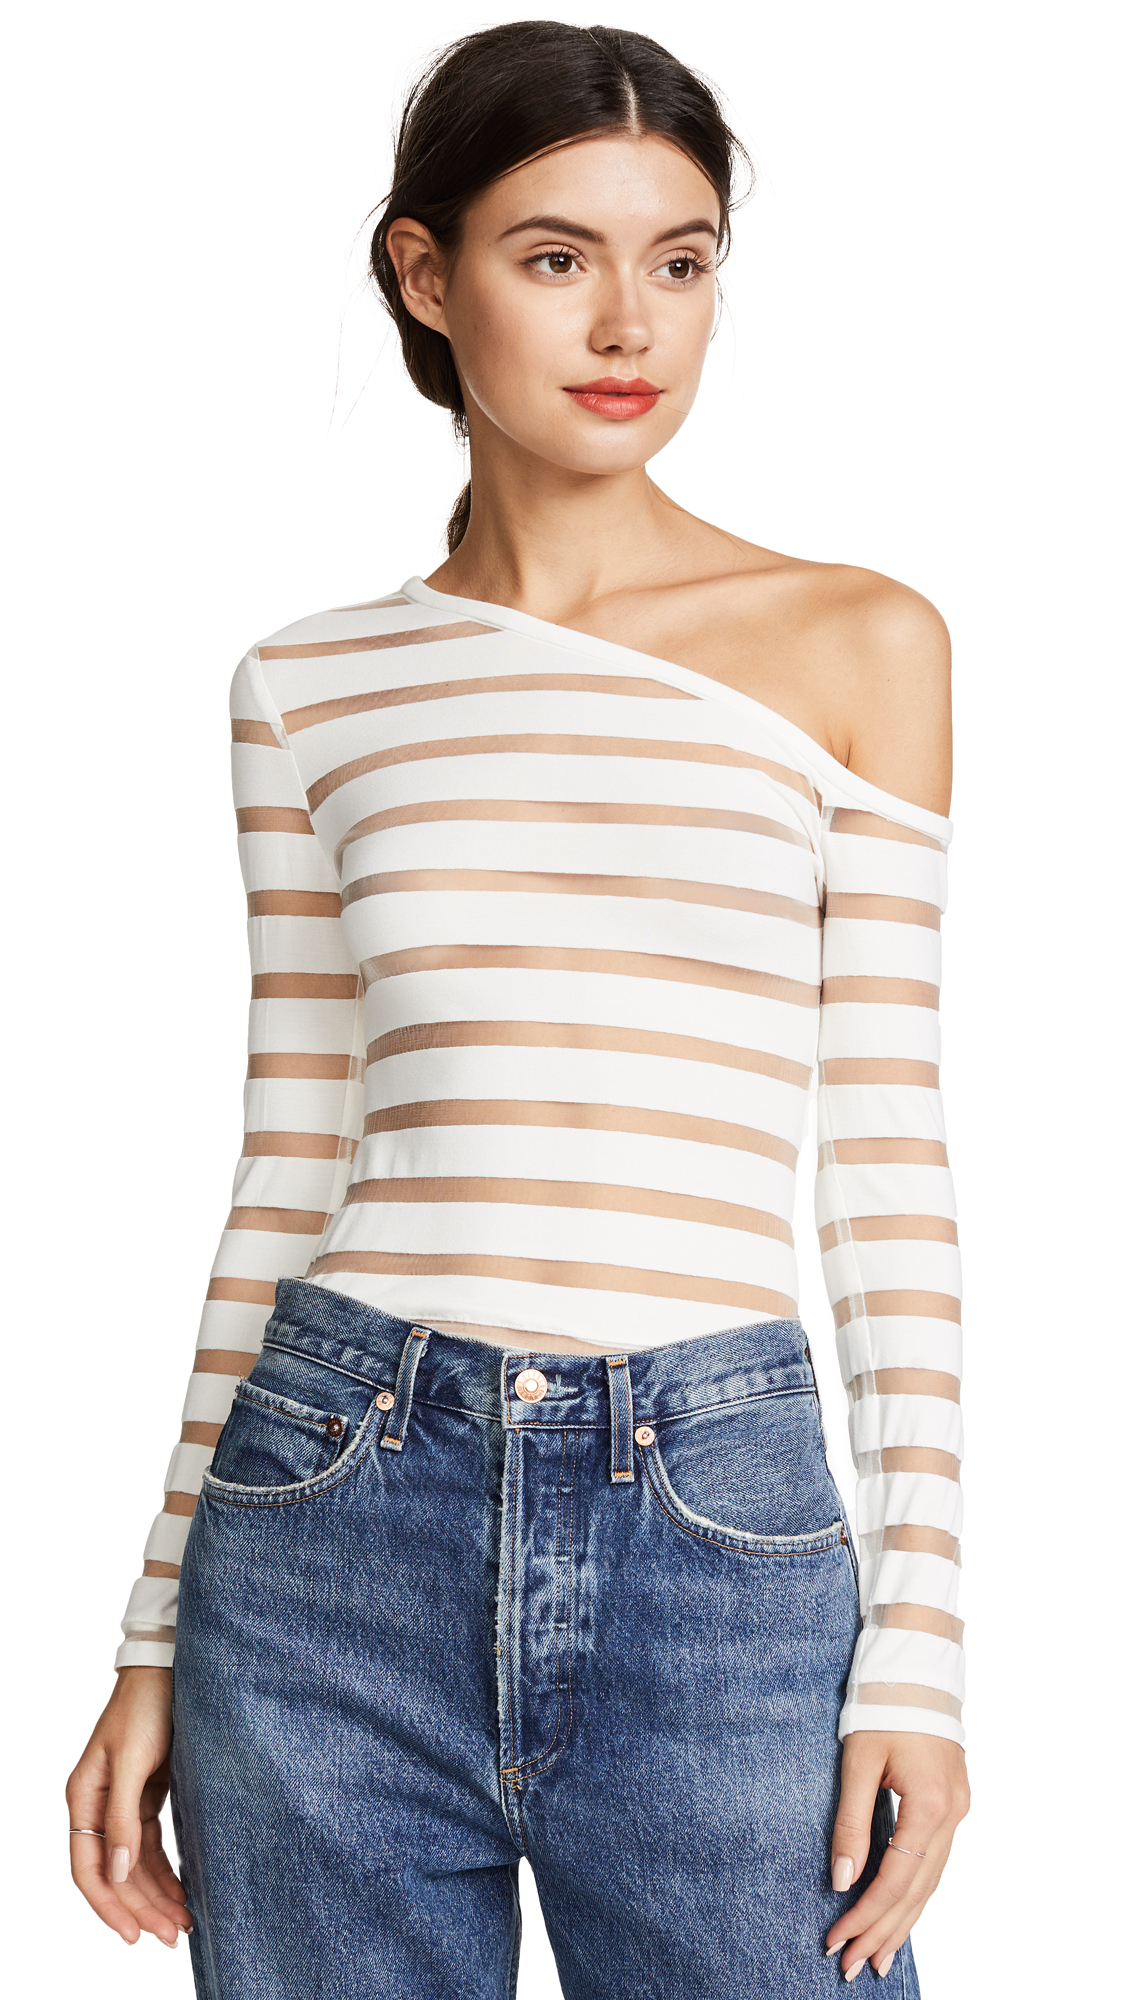 Yigal Azrouel One Shoulder Sheer Stripe Knit Top - Off White